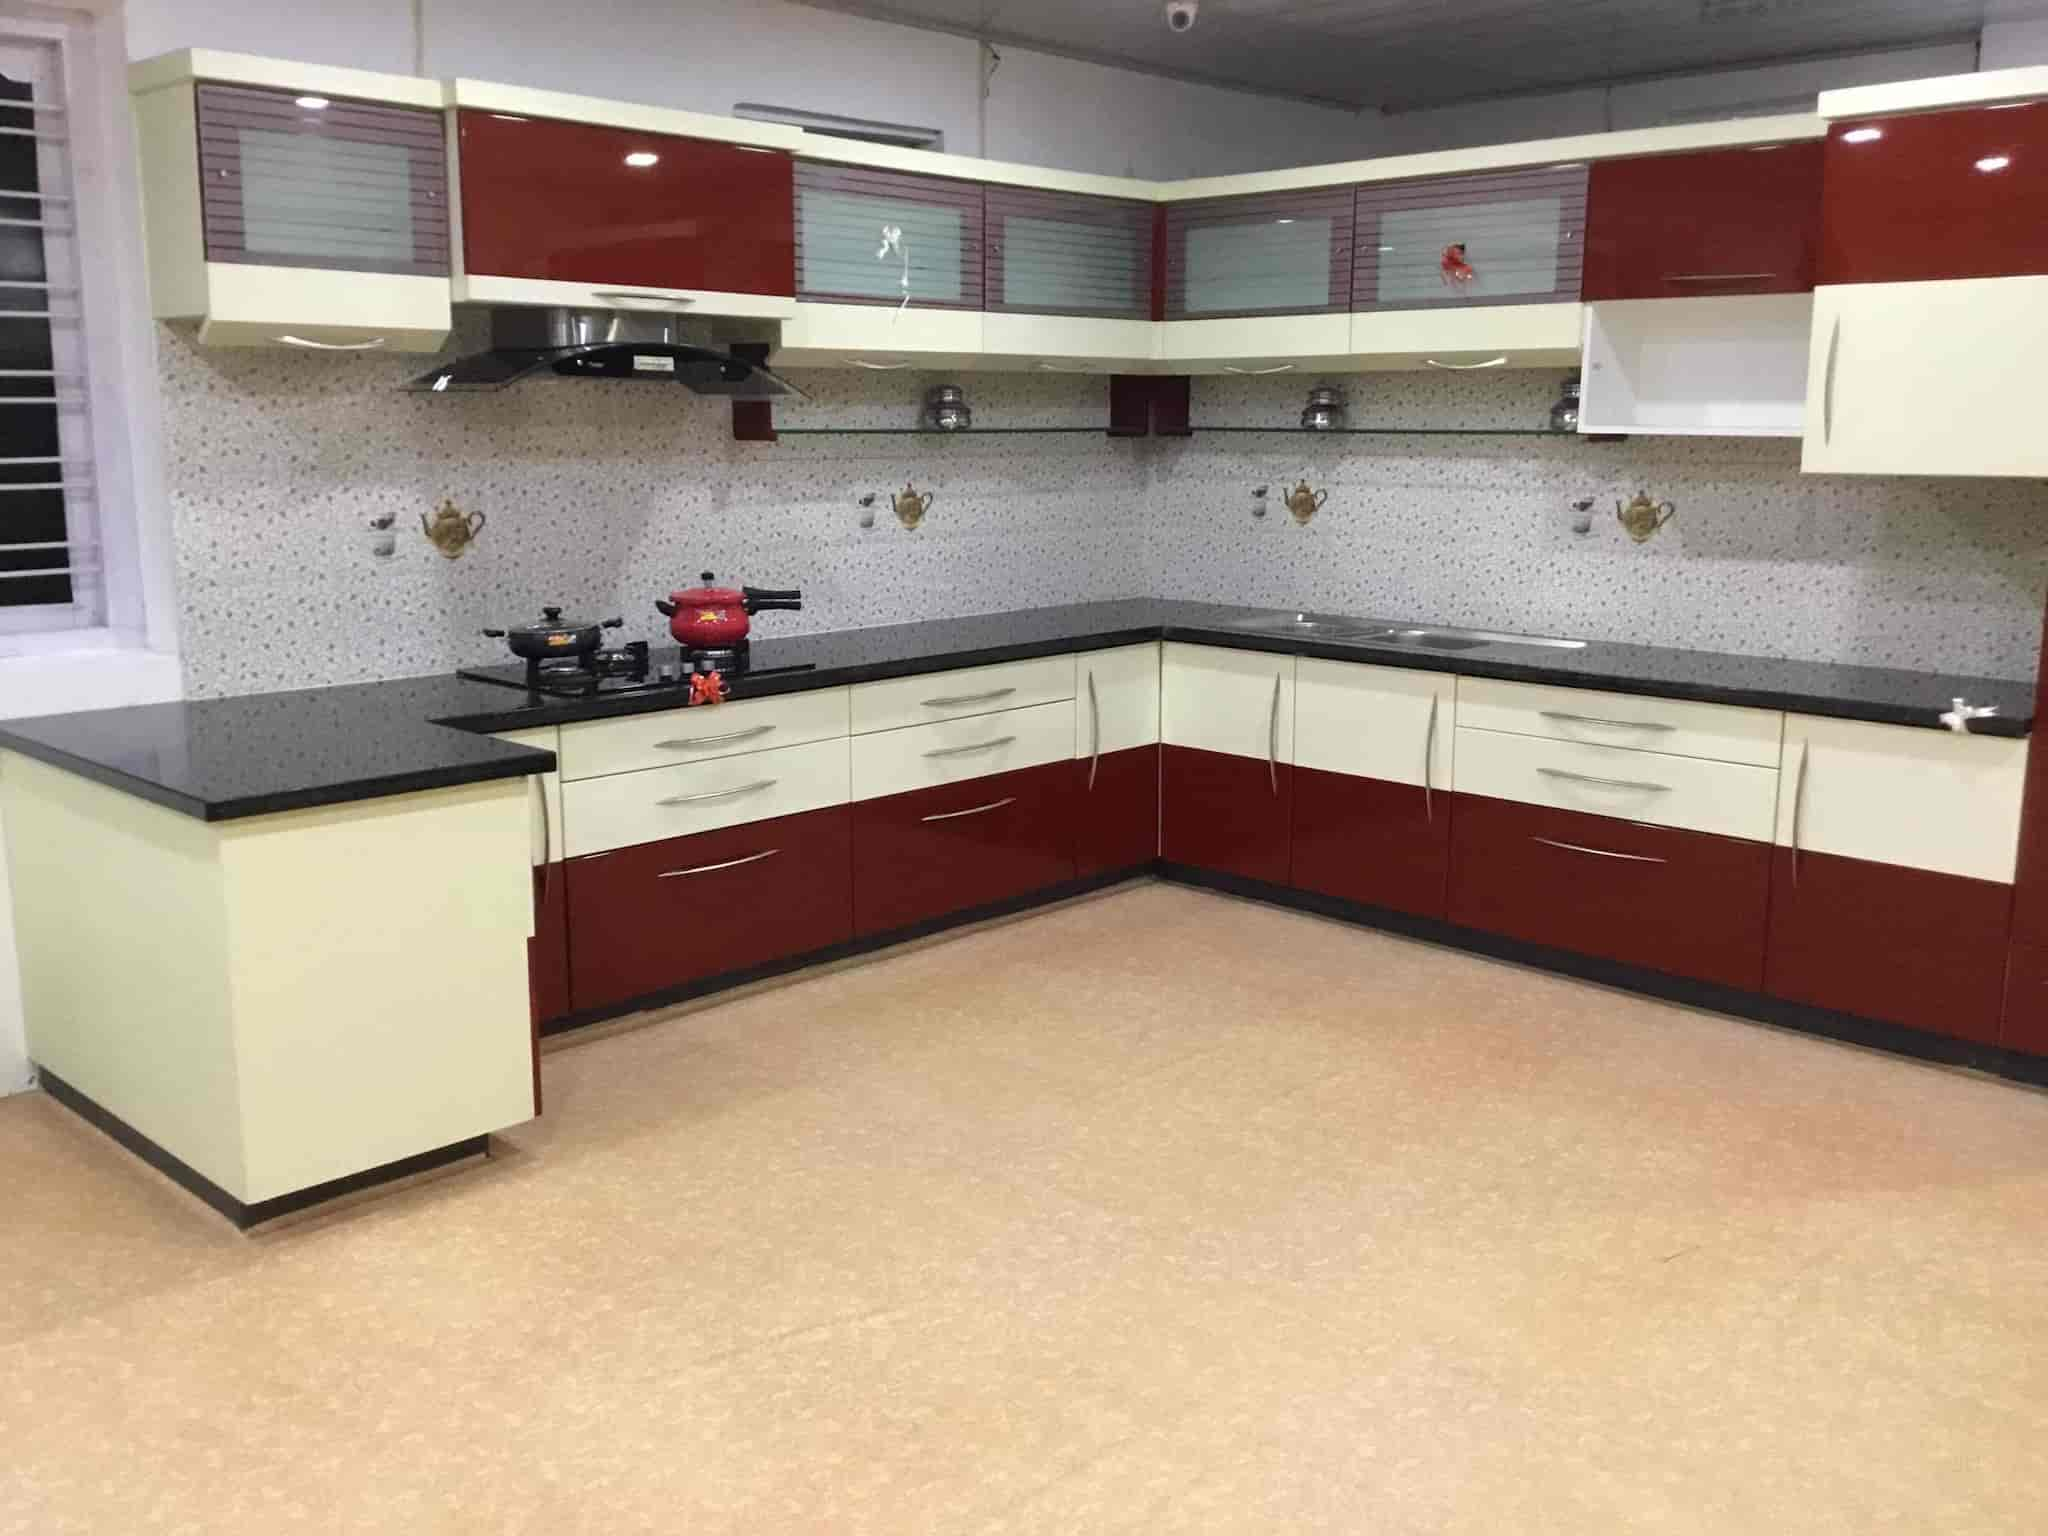 Top 50 Modular Kitchen Manufacturers In Thiruvananthapuram À¤® À¤¡ À¤²à¤° À¤• À¤šà¤¨ À¤®à¤¨ À¤«à¤• À¤šà¤°à¤° À¤¸ À¤¥ À¤° À¤µà¤¨ À¤¤à¤ª À¤°à¤® Best Kitchen Furniture Designers Justdial